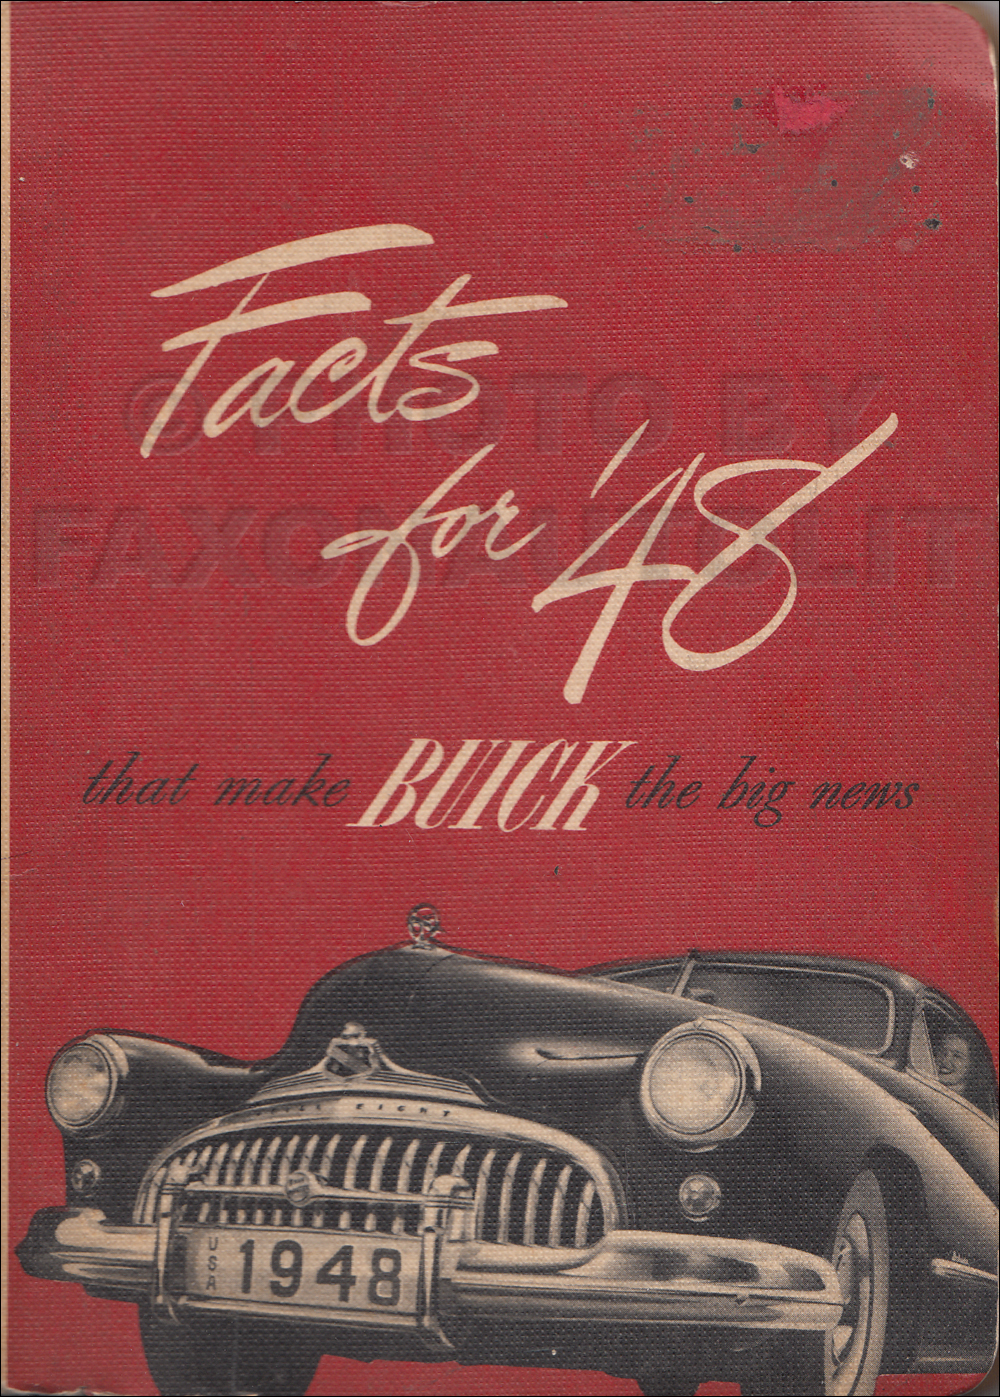 1948 Buick Facts Book Original